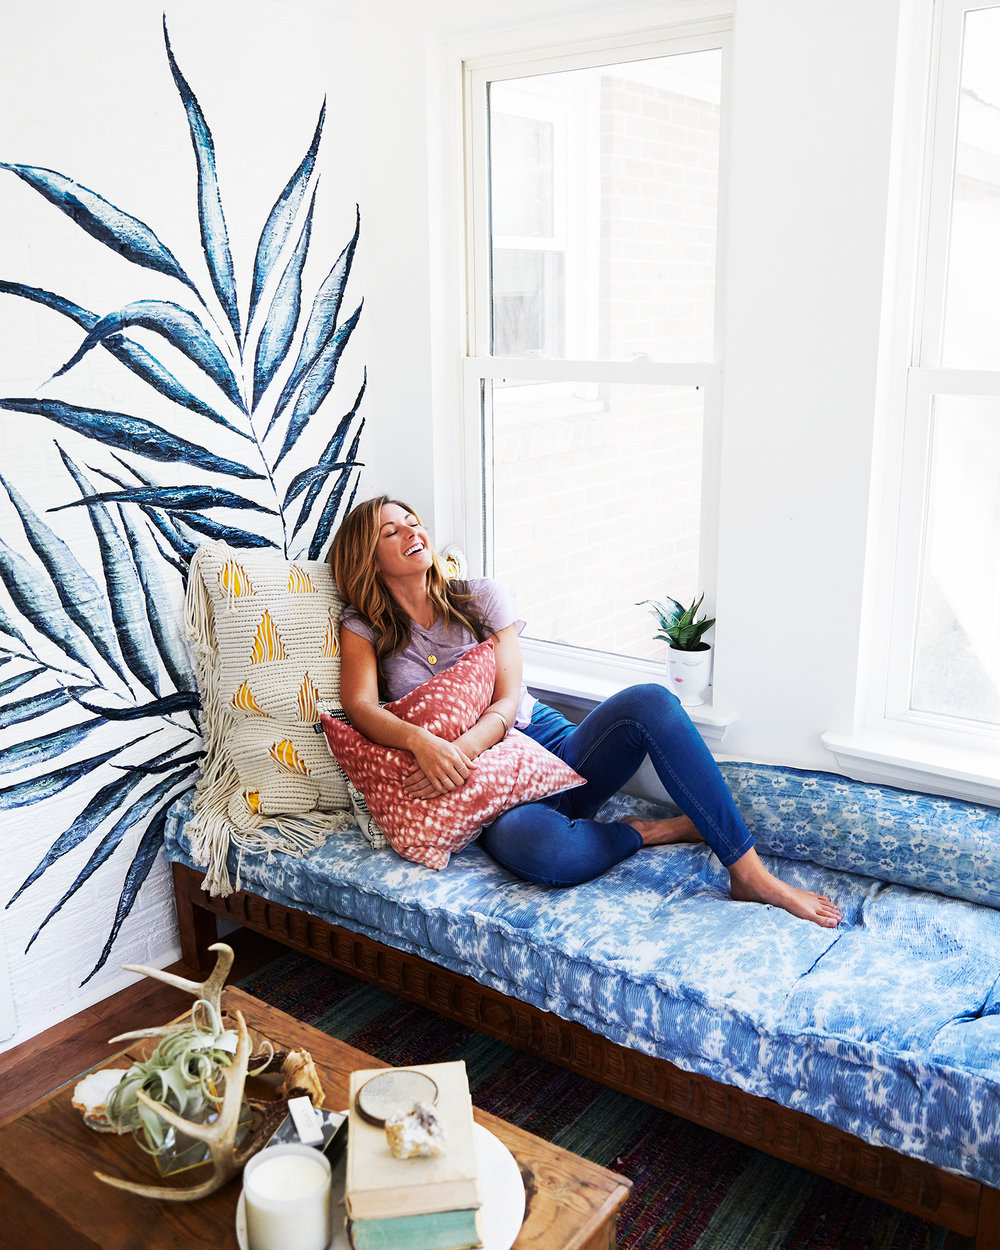 chelsea meissner at home - a chat with Chelsea Meissner + Kim Spraldin Wolfe